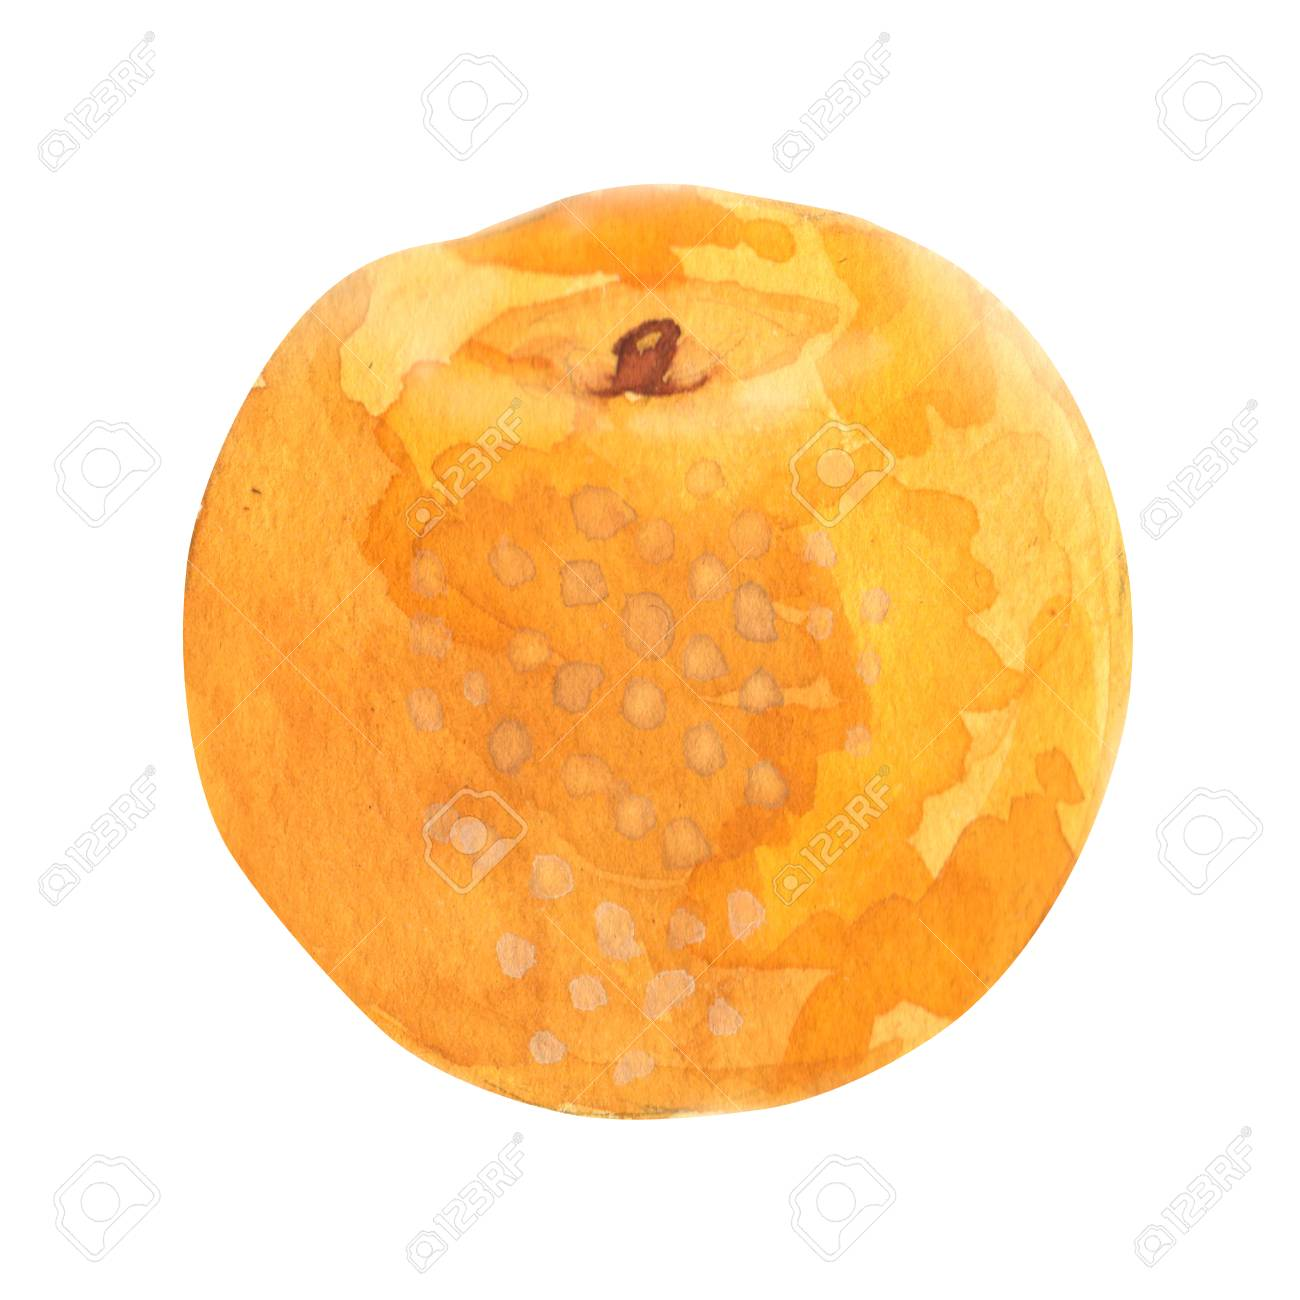 PEAR. watercolor painting on white background - 80243785